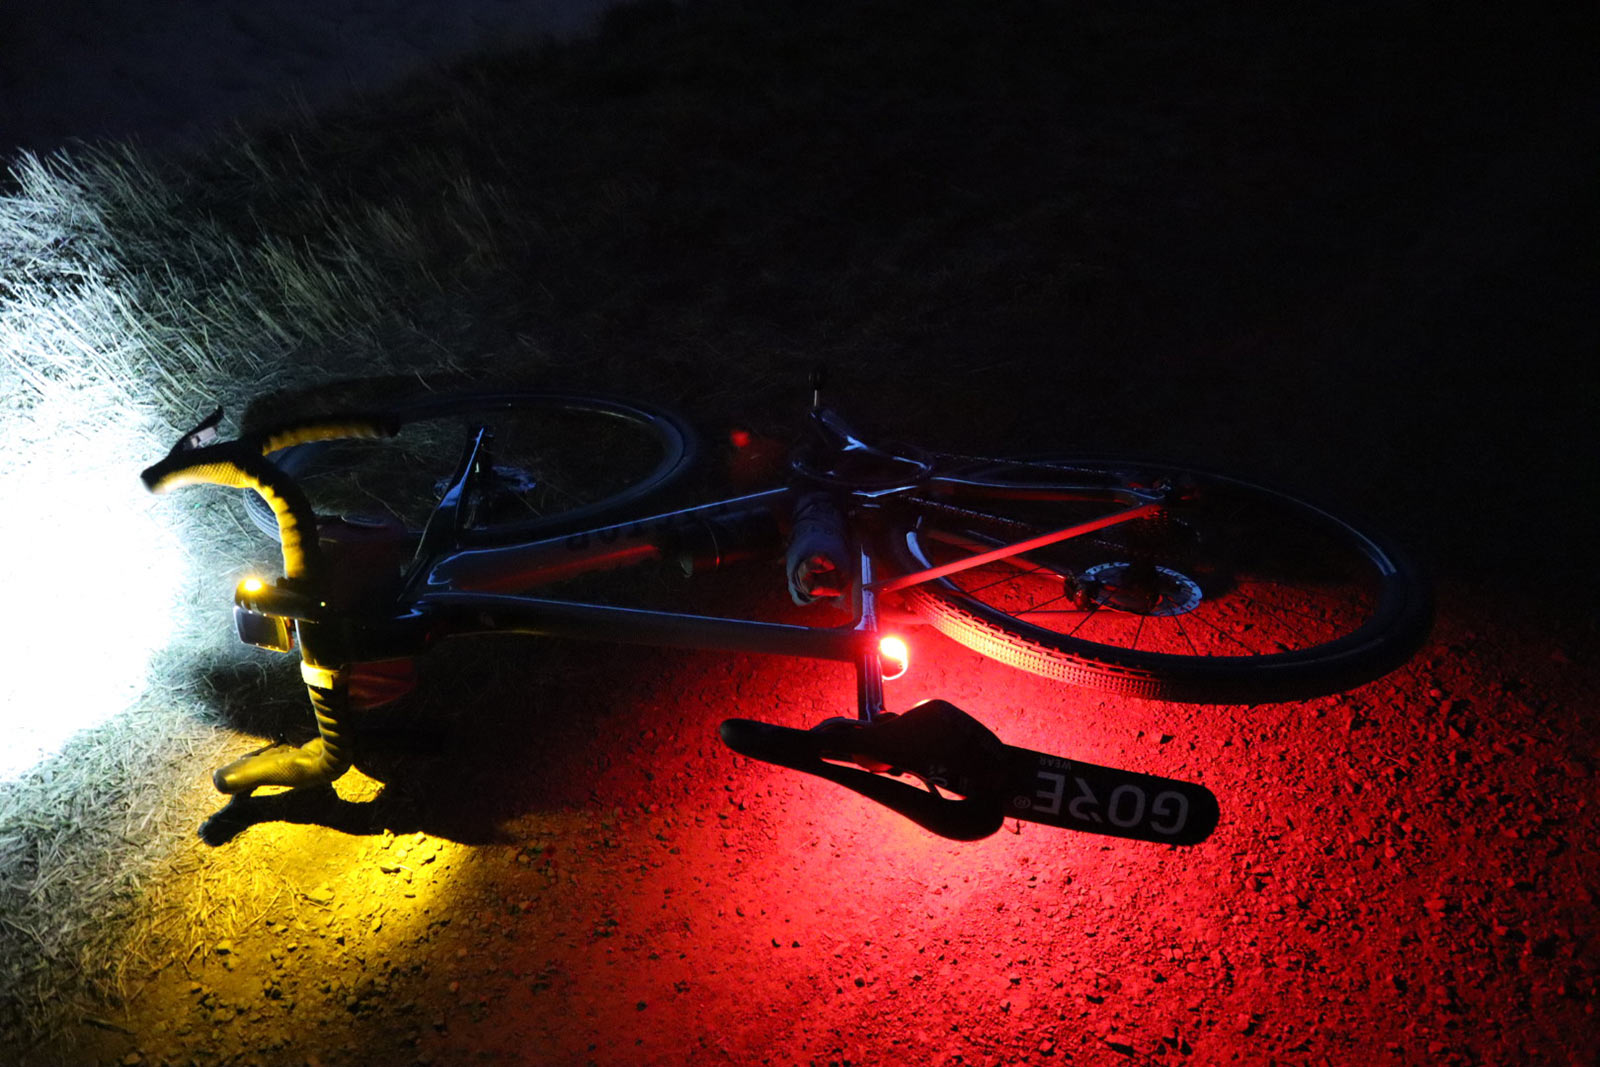 Best Bike Lights of 2021 - Our favorite lights to see and be seen!